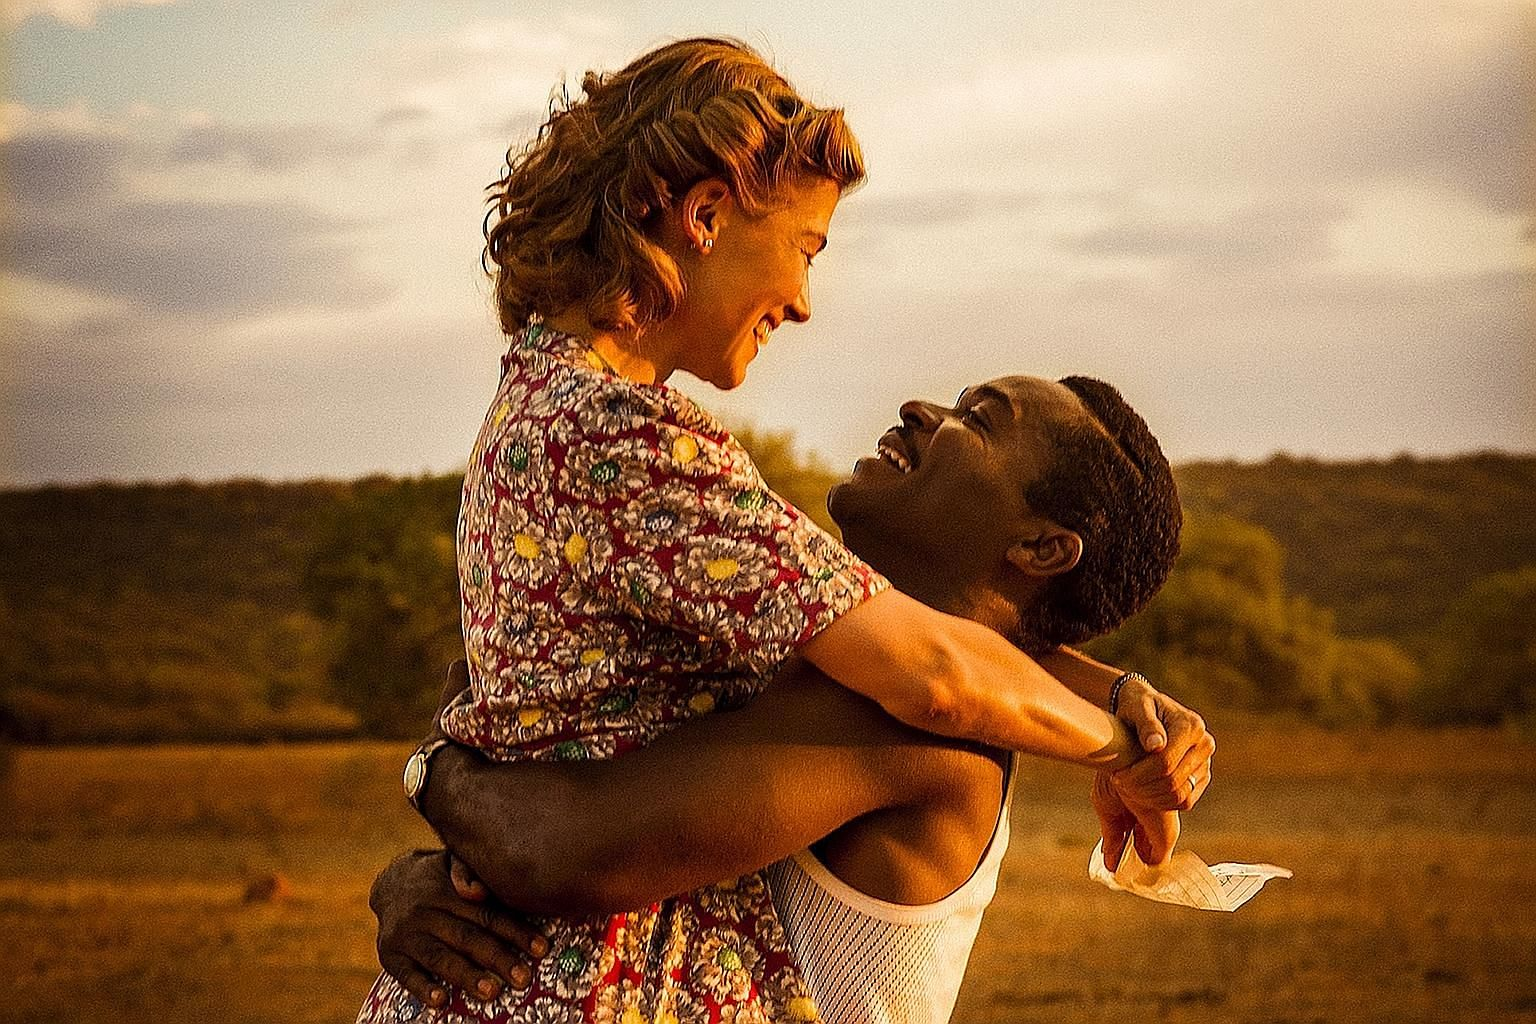 Rosamund Pike and David Oyelowo star in A United Kingdom, about a black man and white woman who fall in love in England in the 1940s.